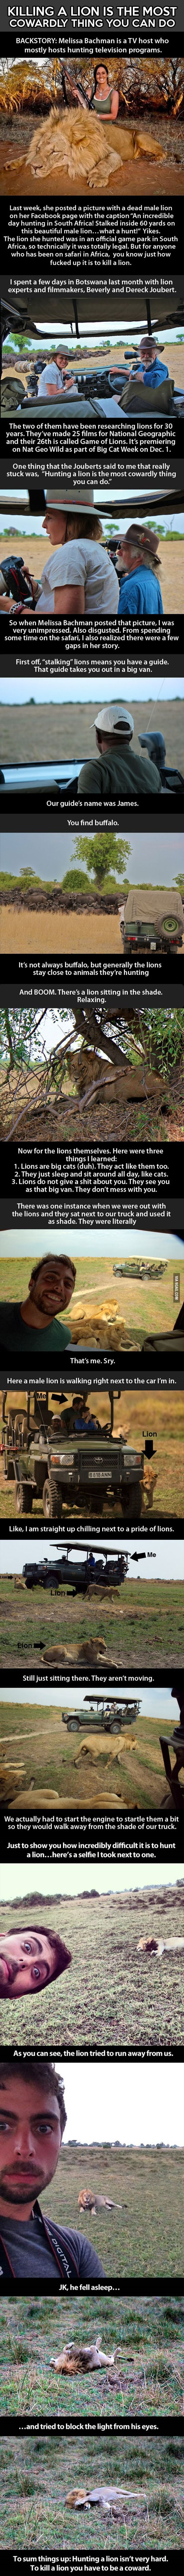 A very important take that deals with endangered animals.